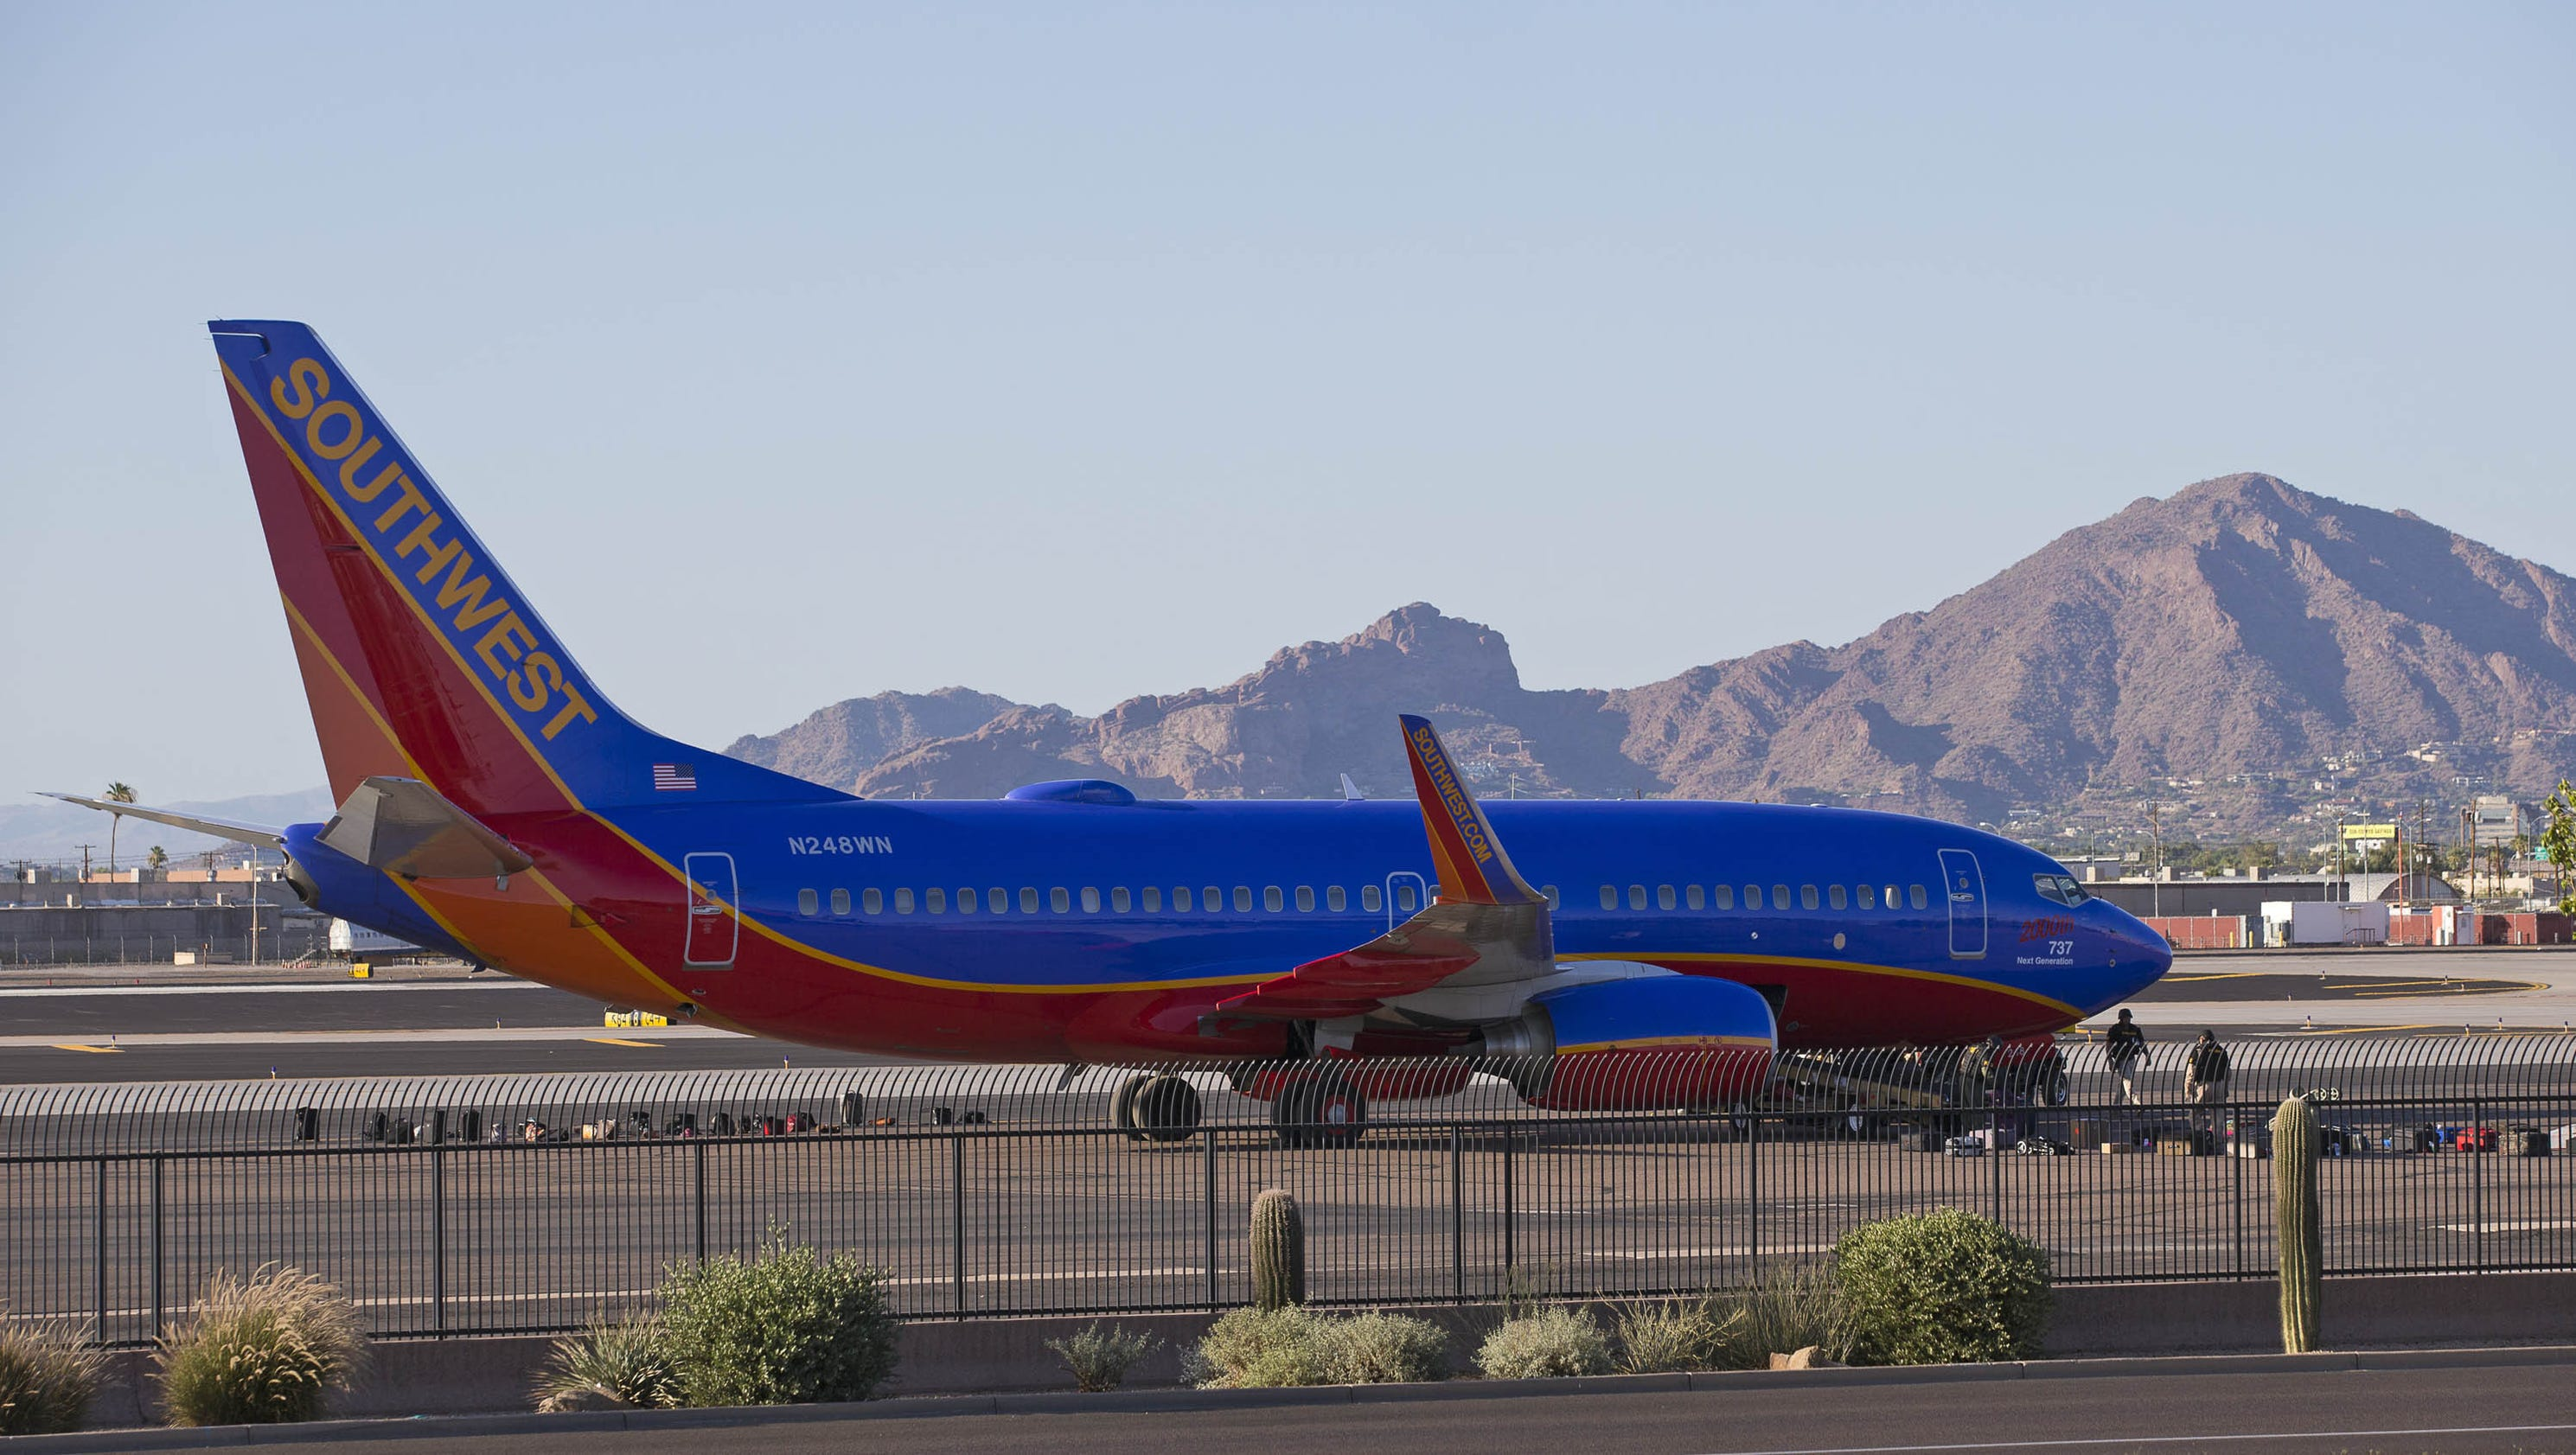 35 Southwest Airlines